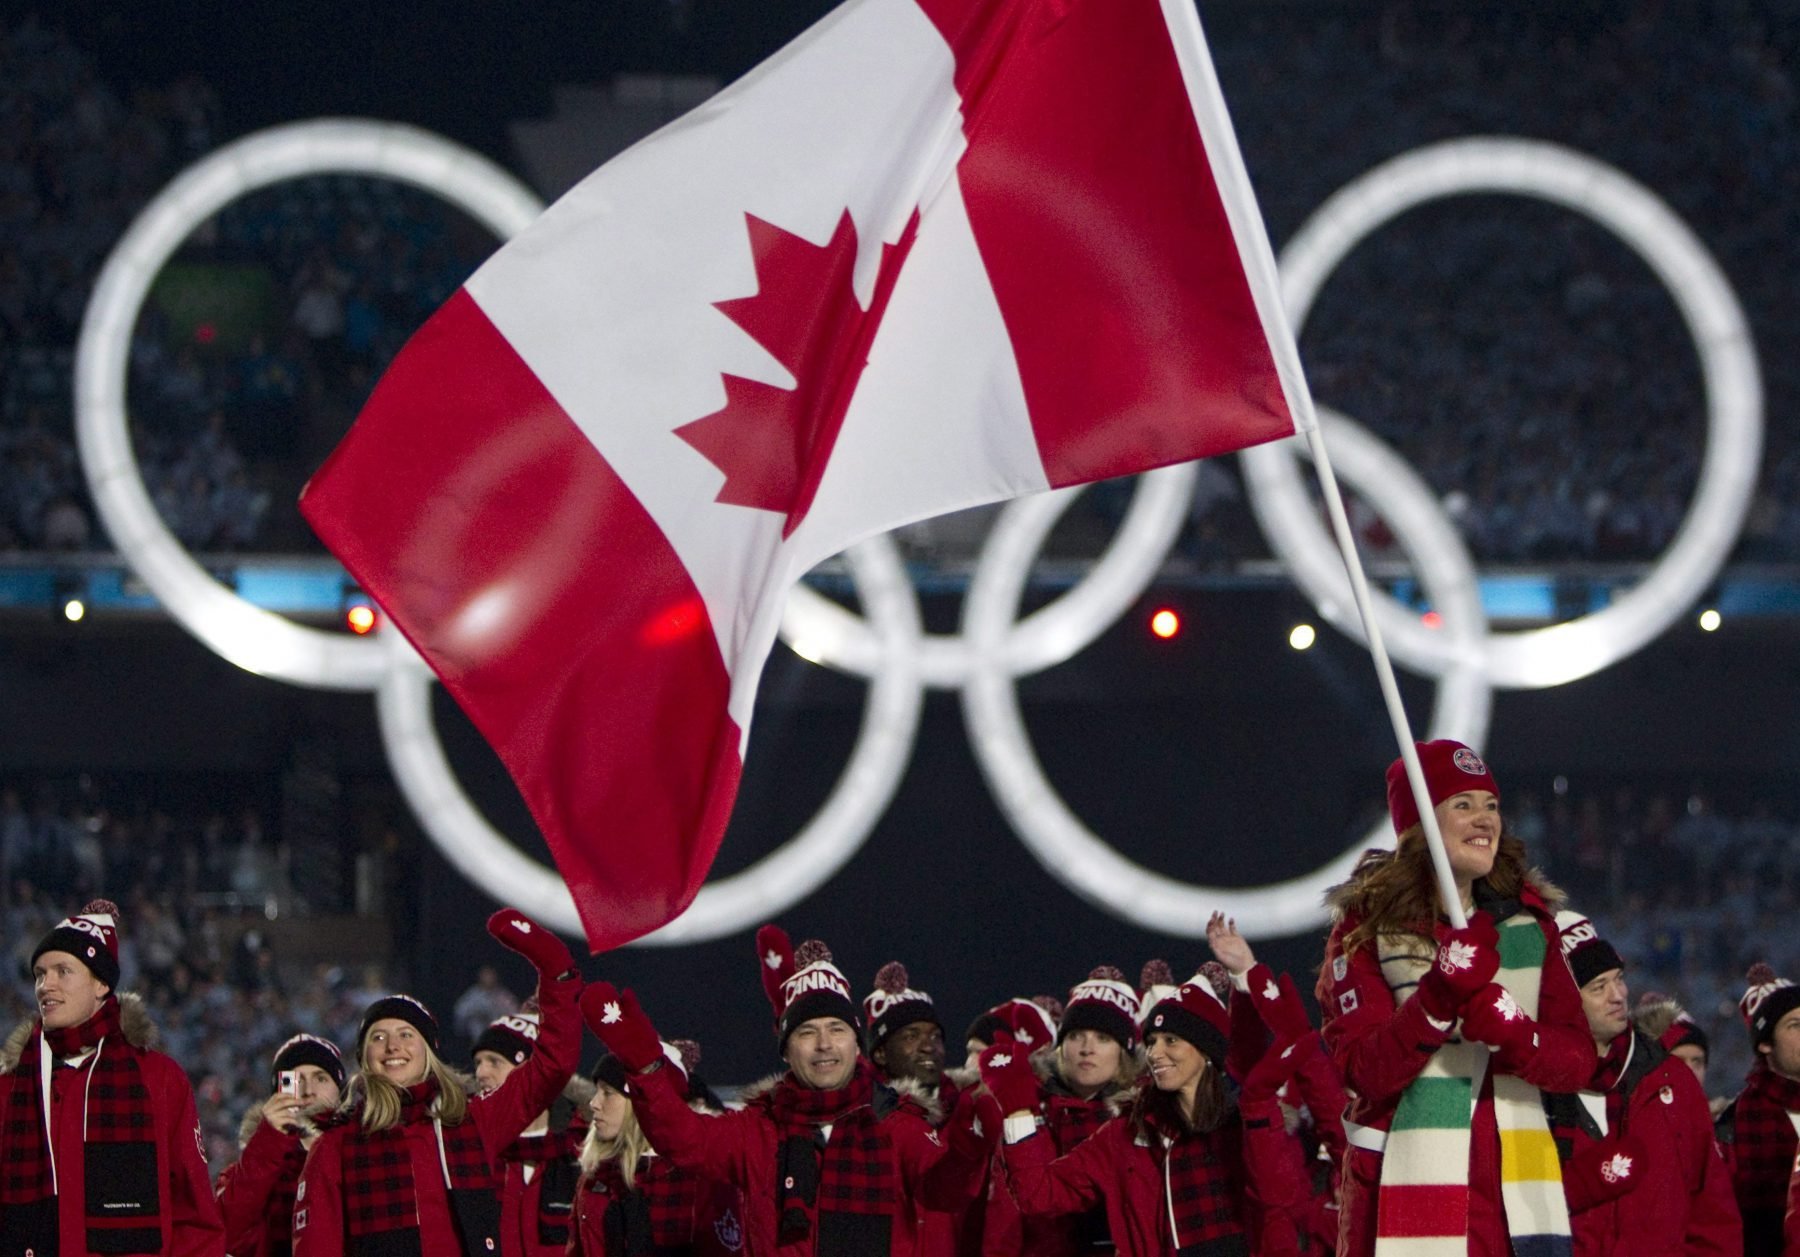 Canadian Olympic speed skater and cyclist Clara Hughes leads the Canadian team during the athlete's parade at the opening ceremony